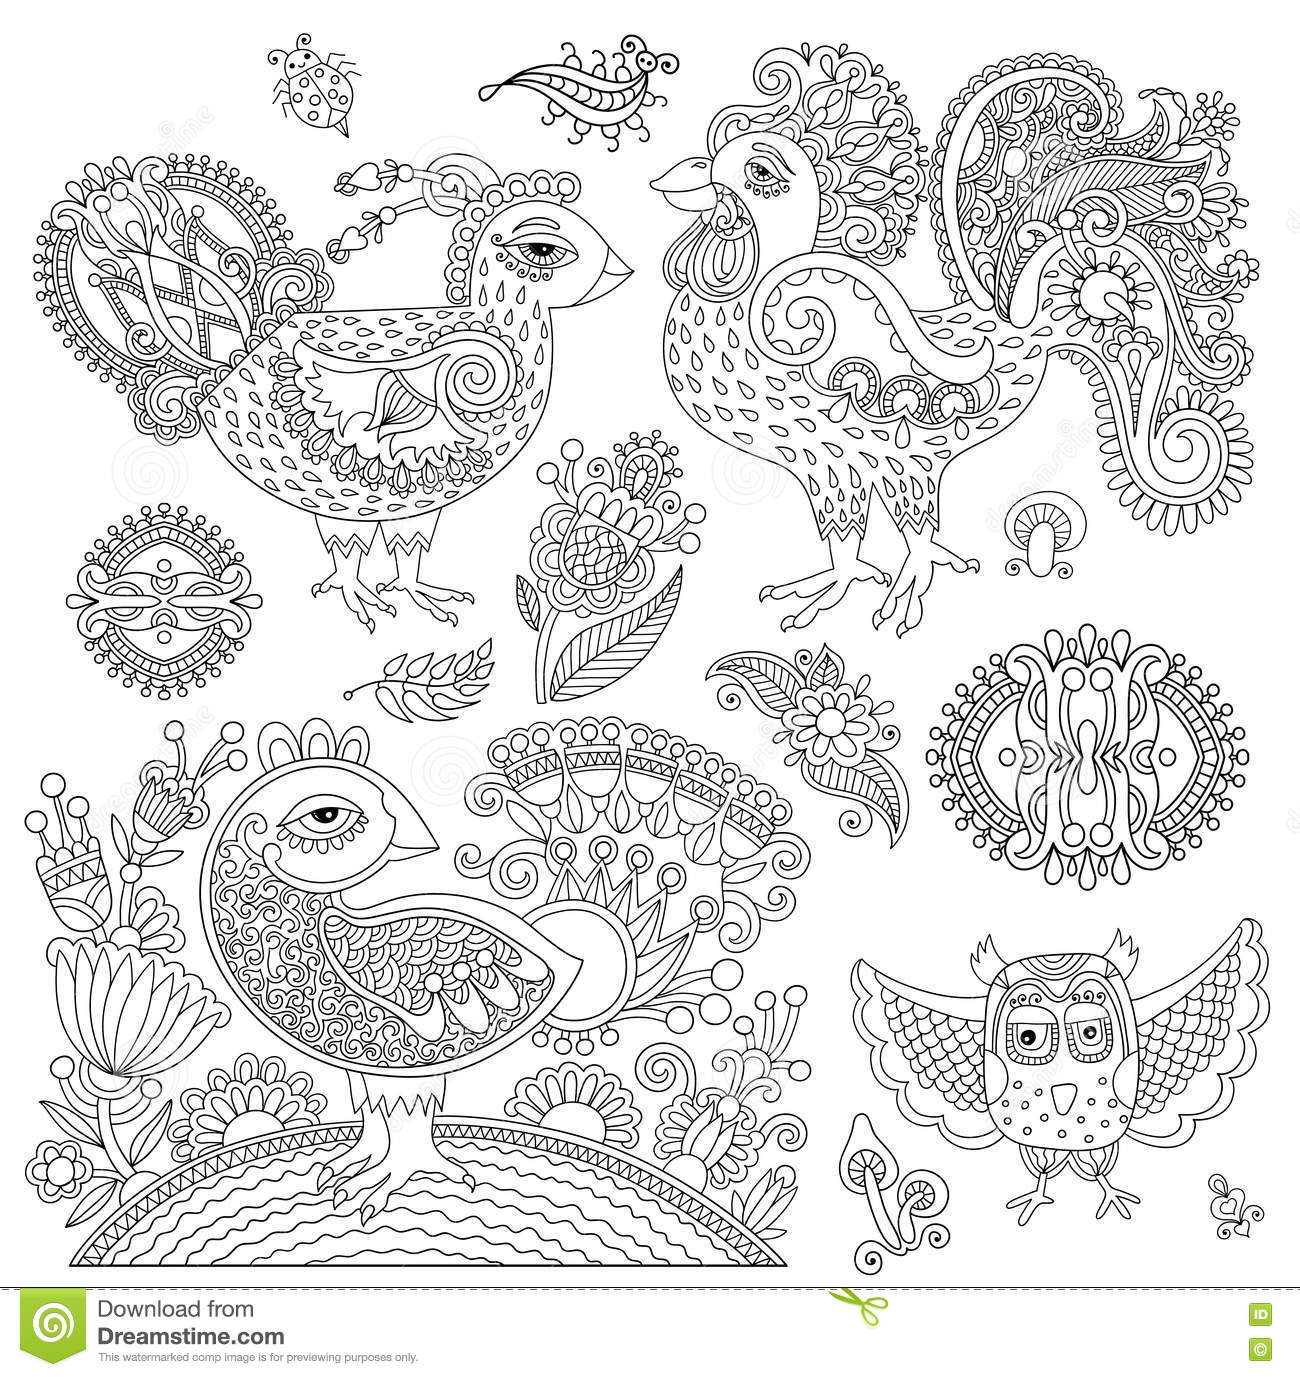 Lo Zentangle Del Pollo Ha Stilizzato Per Il Libro Da Colorare Per L